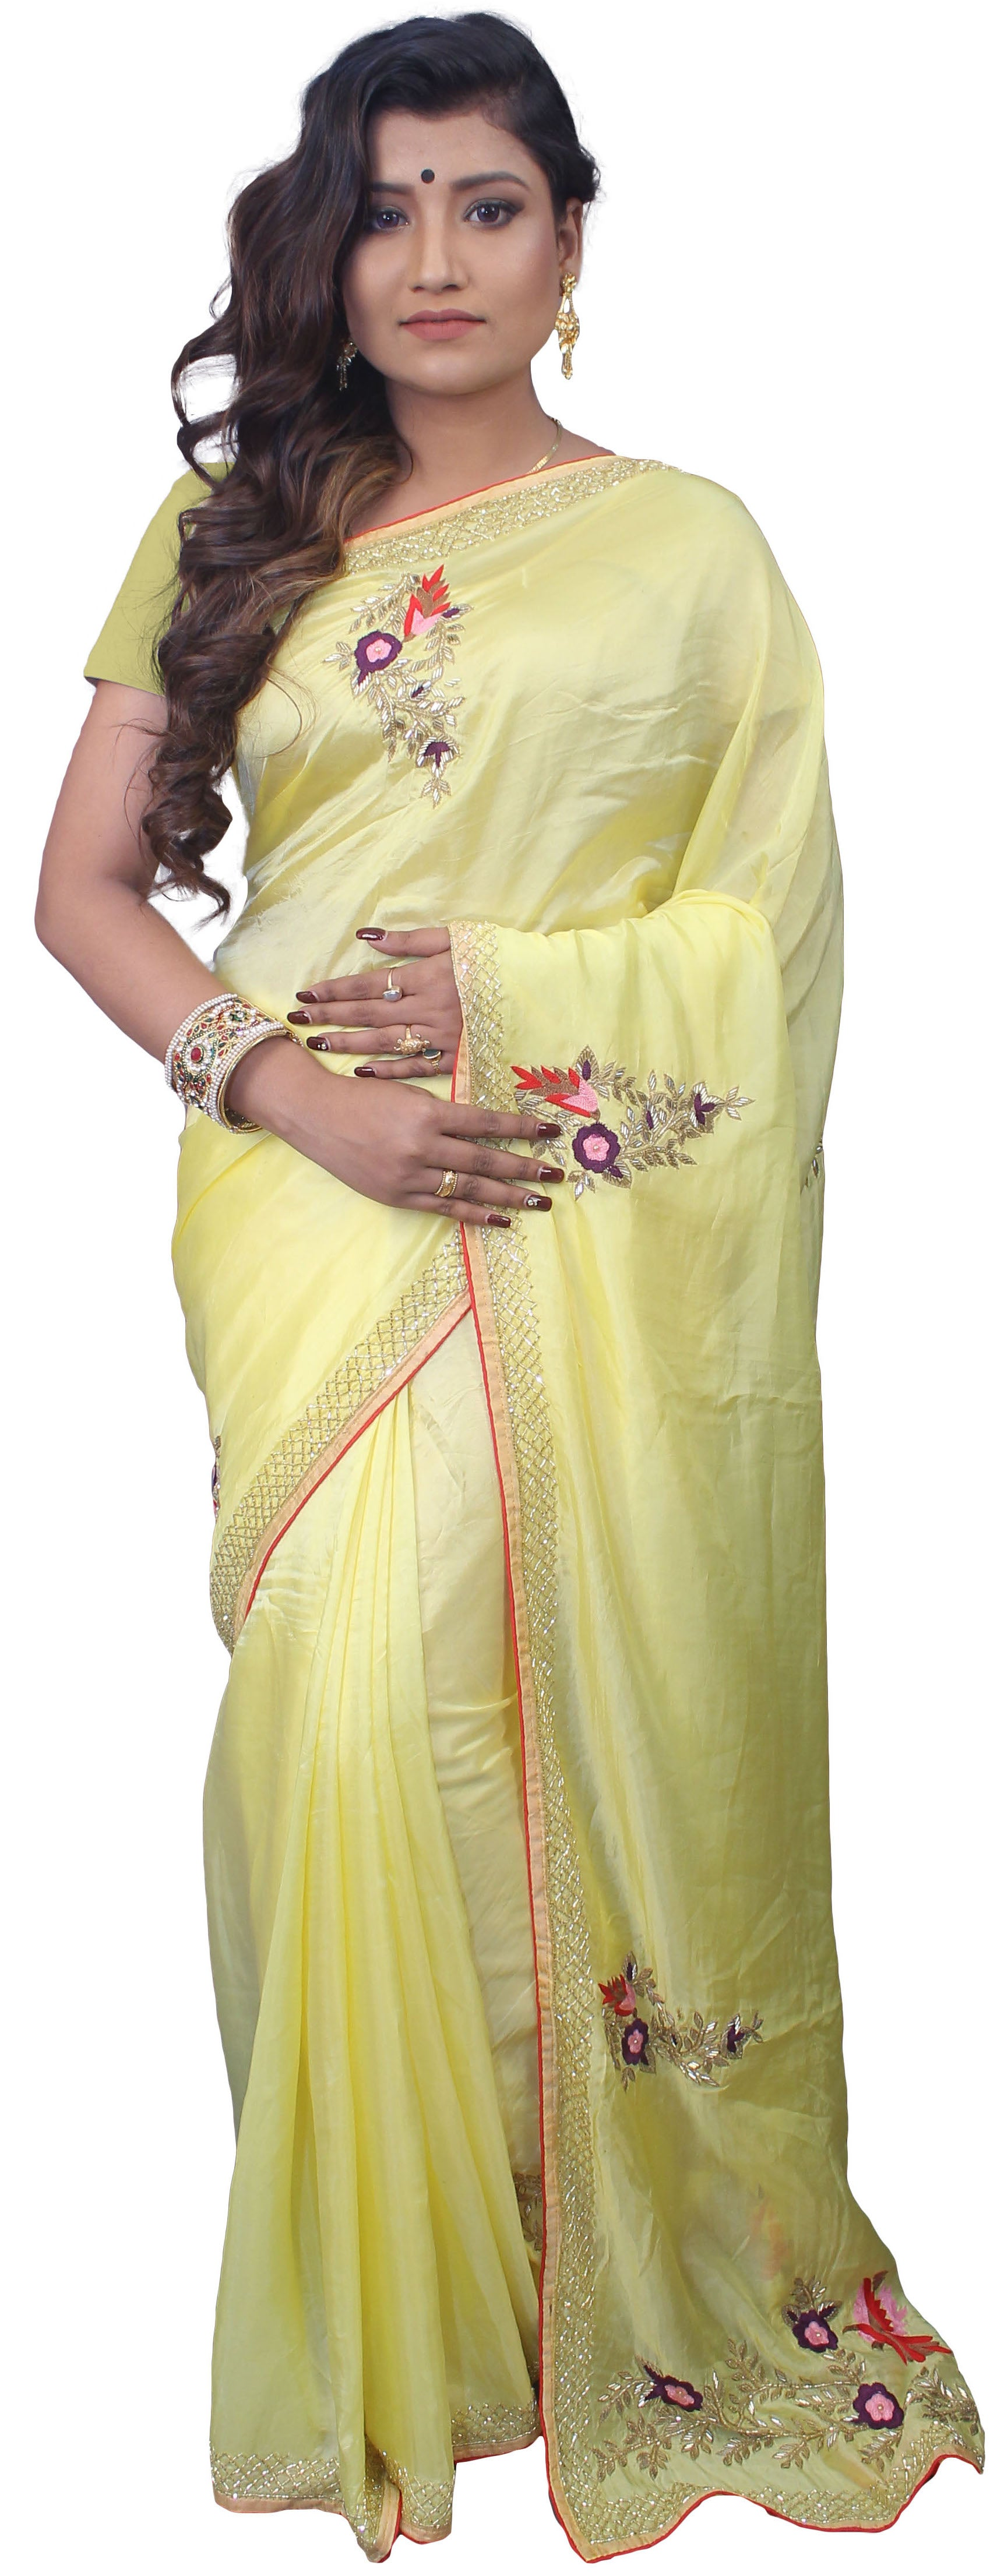 SMSAREE Yellow Designer Wedding Partywear Satin Silk Cutdana Thread Zari & Pearl Hand Embroidery Work Bridal Saree Sari With Blouse Piece E847